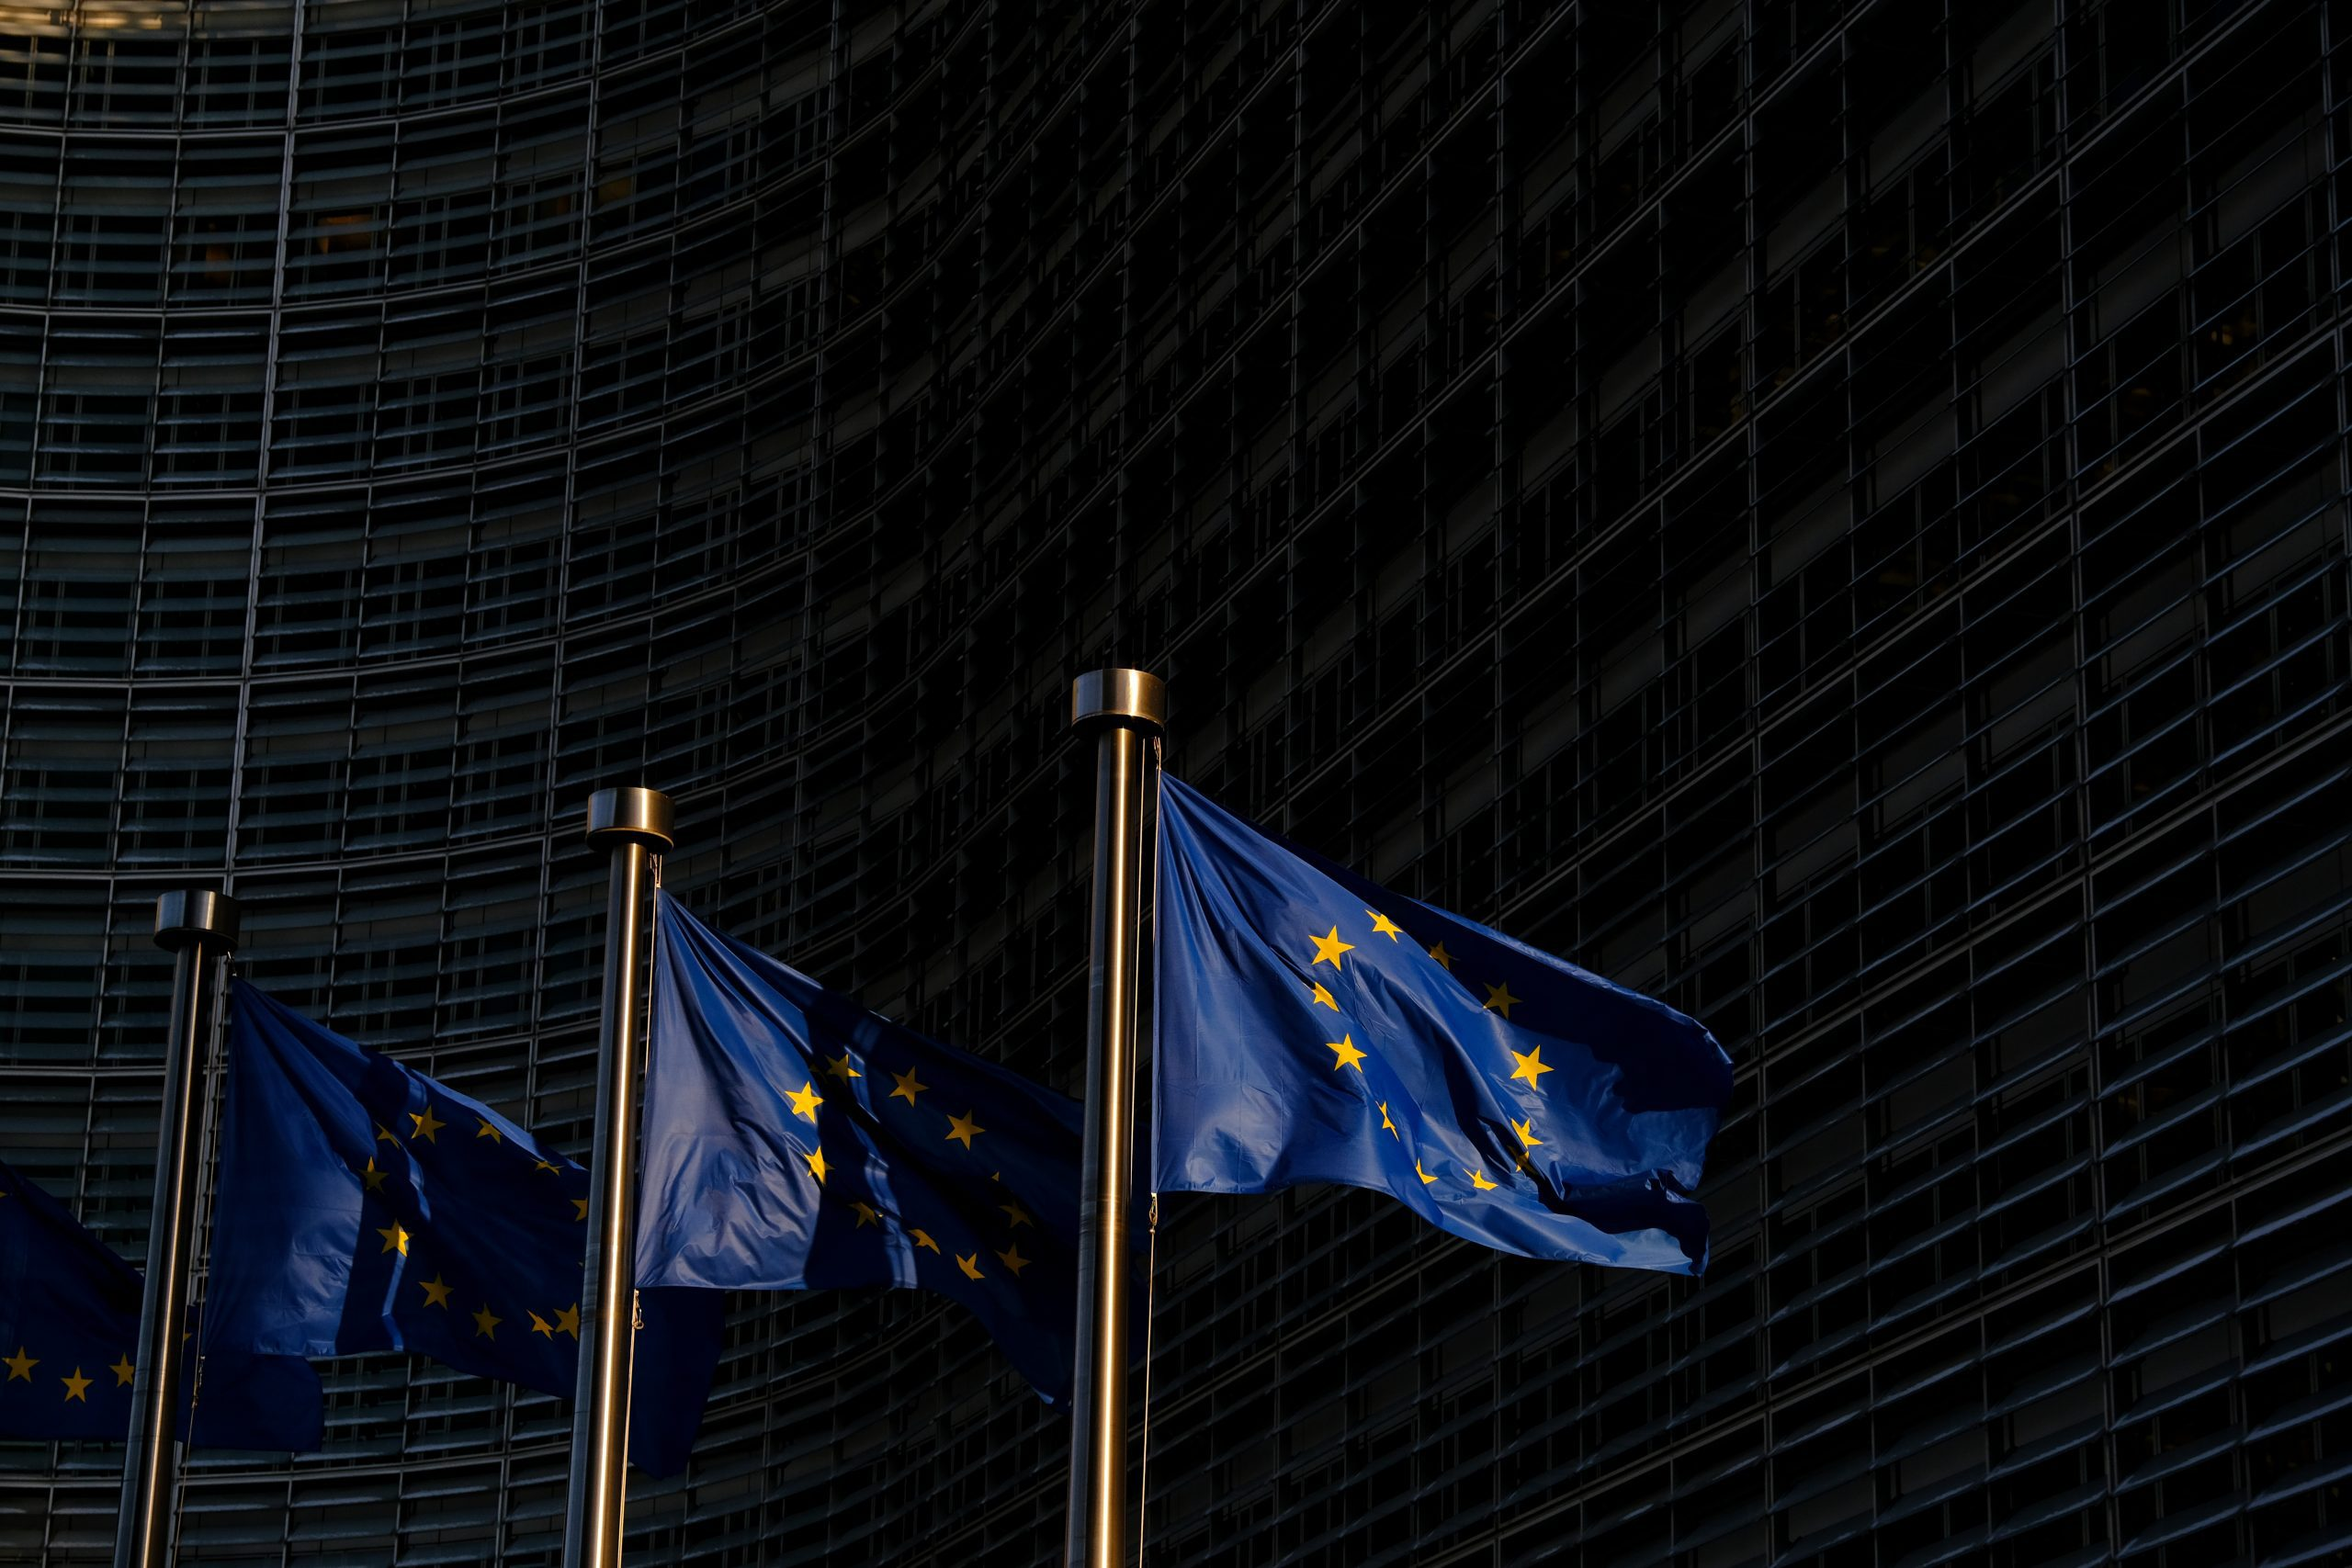 EU Commission is setting out to implement the FATF Travel Rule